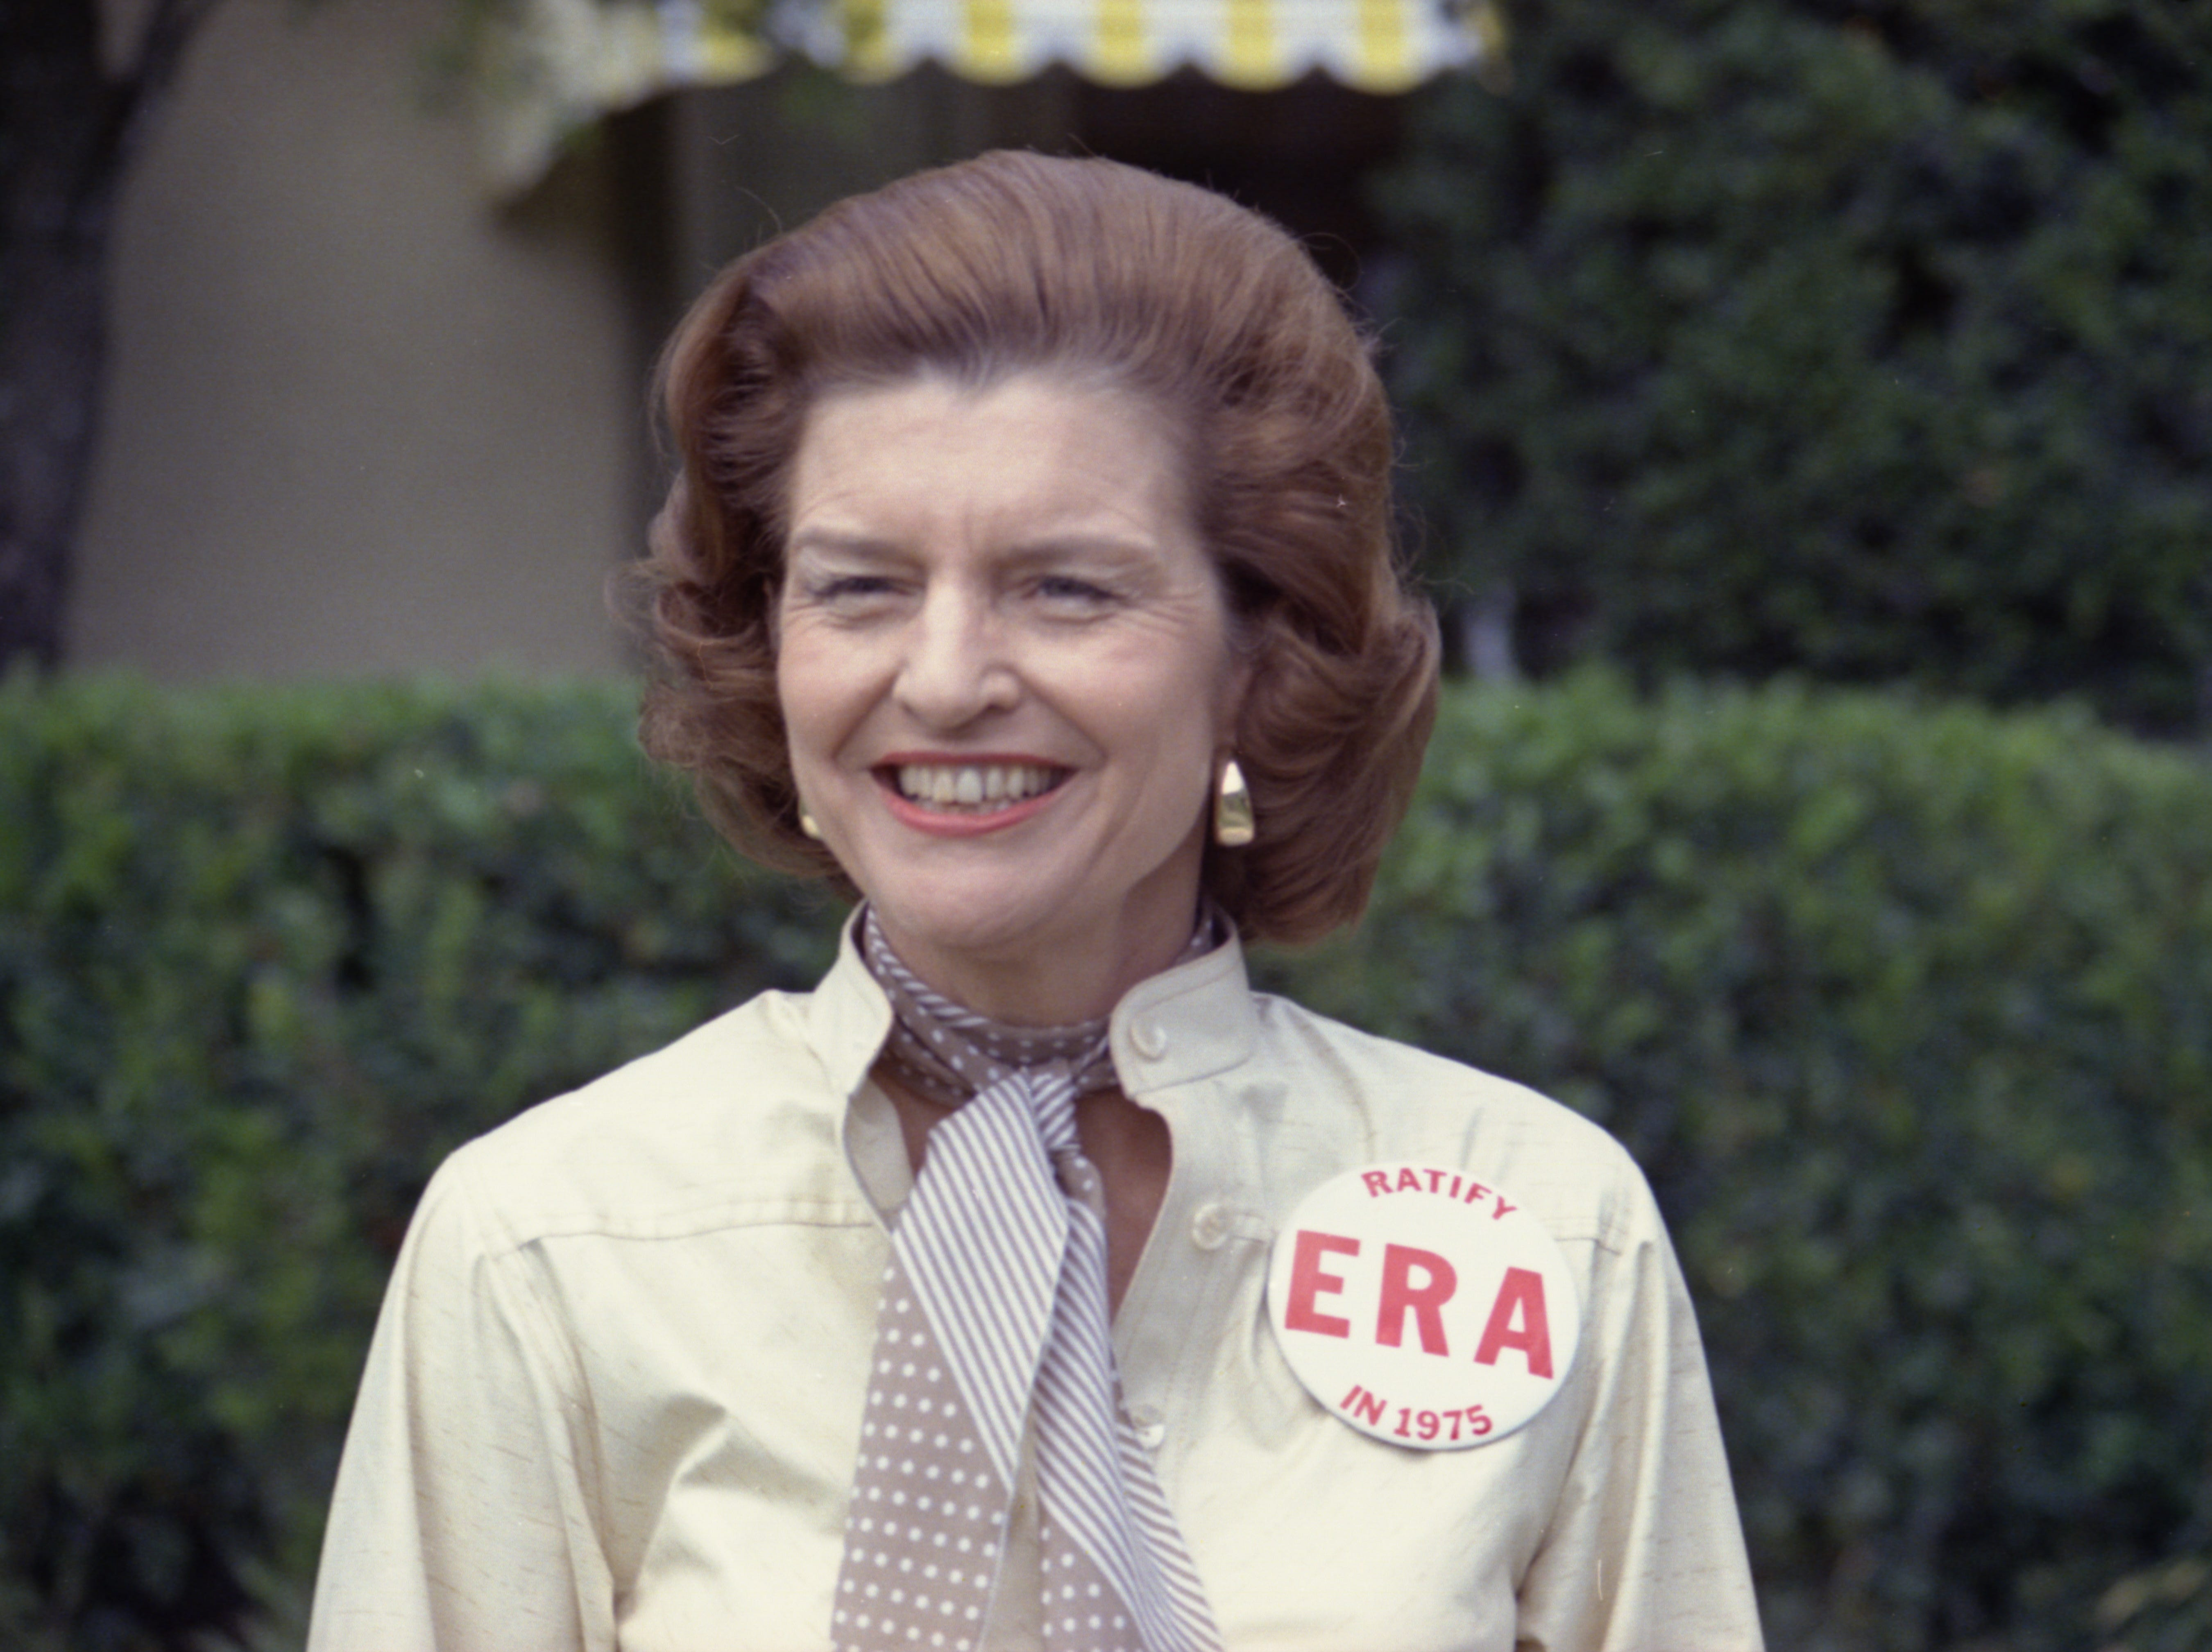 Betty's outspoken support for the Equal Rights Amendment sparked controversy, but she refused to be silenced.